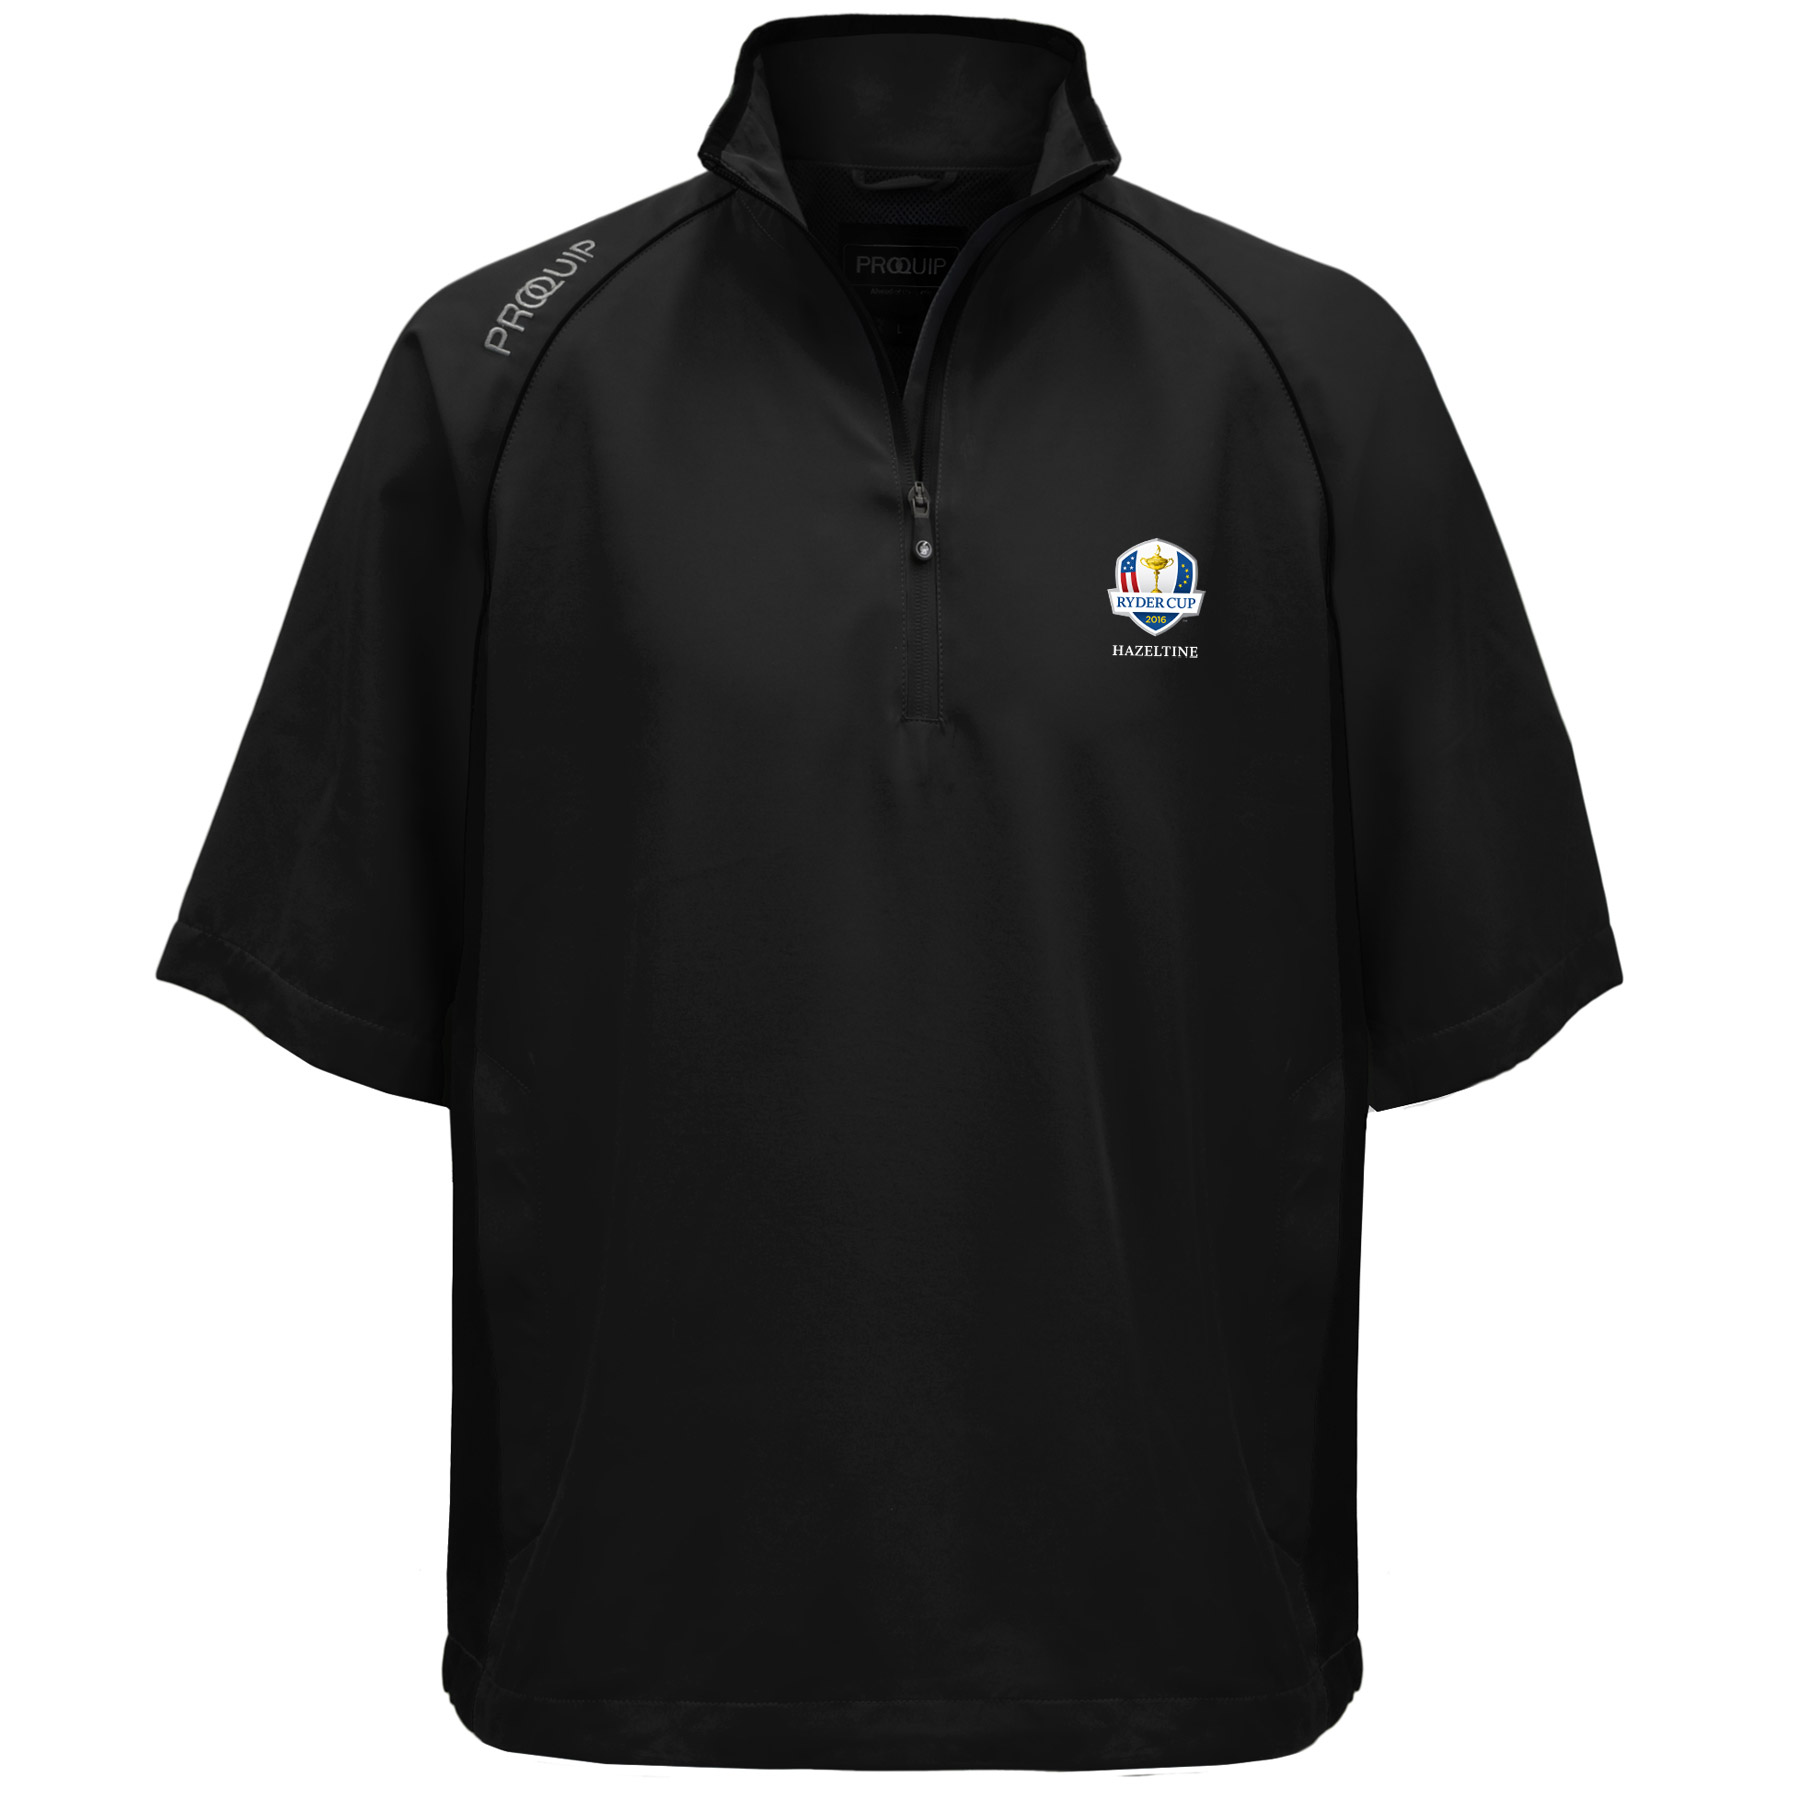 The 2016 Ryder Cup Proquip Ultralite 1/2 Sleeve Wind Top - Black